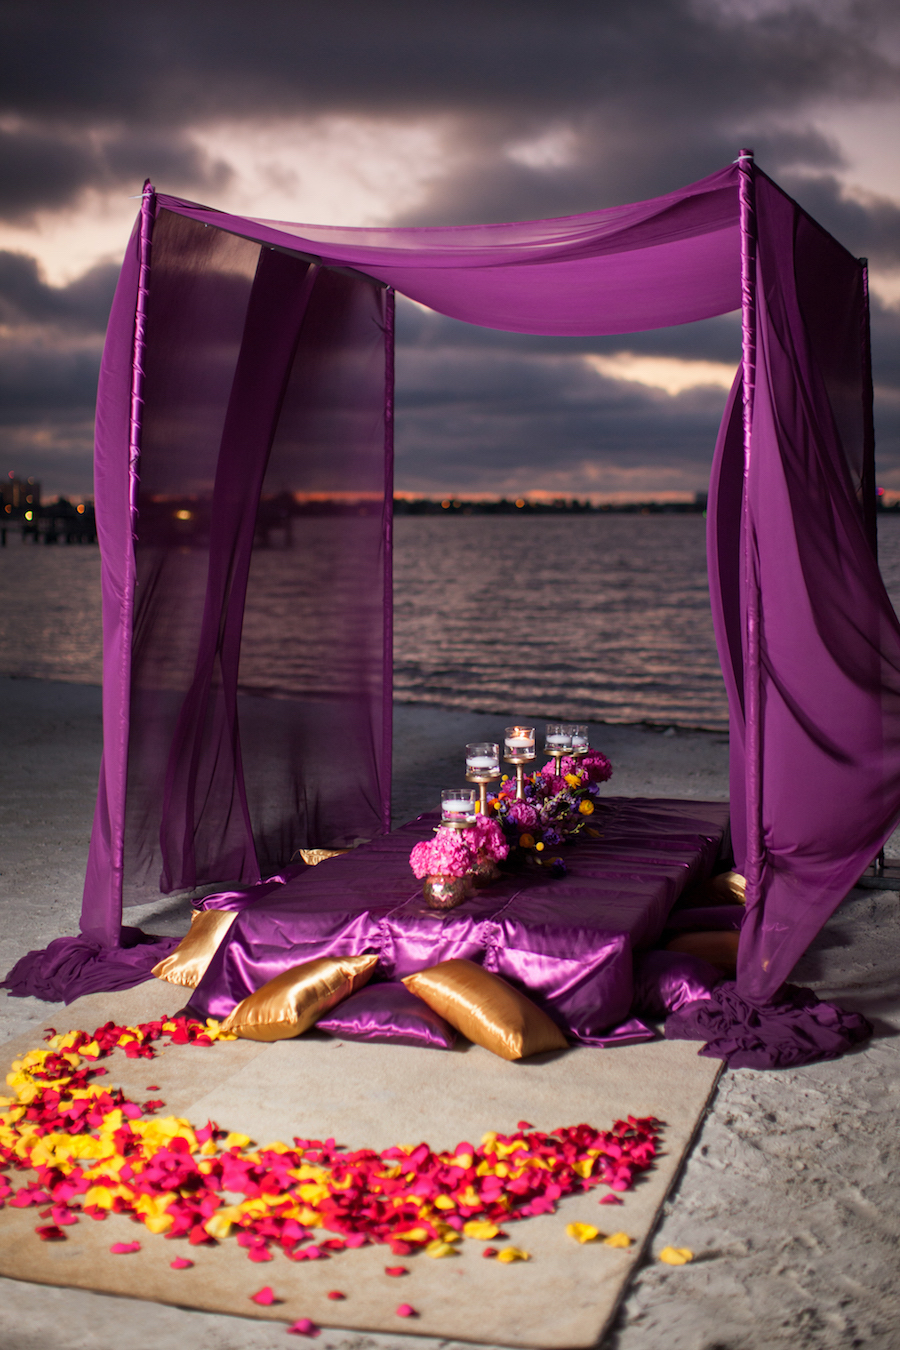 Asian Fusion St Petersburg Wedding with Purple and Yellow Ceremony Flower Rose Petals and Purple Canopy Tent   St. Petersburg Wedding Florist Iza's Flowers